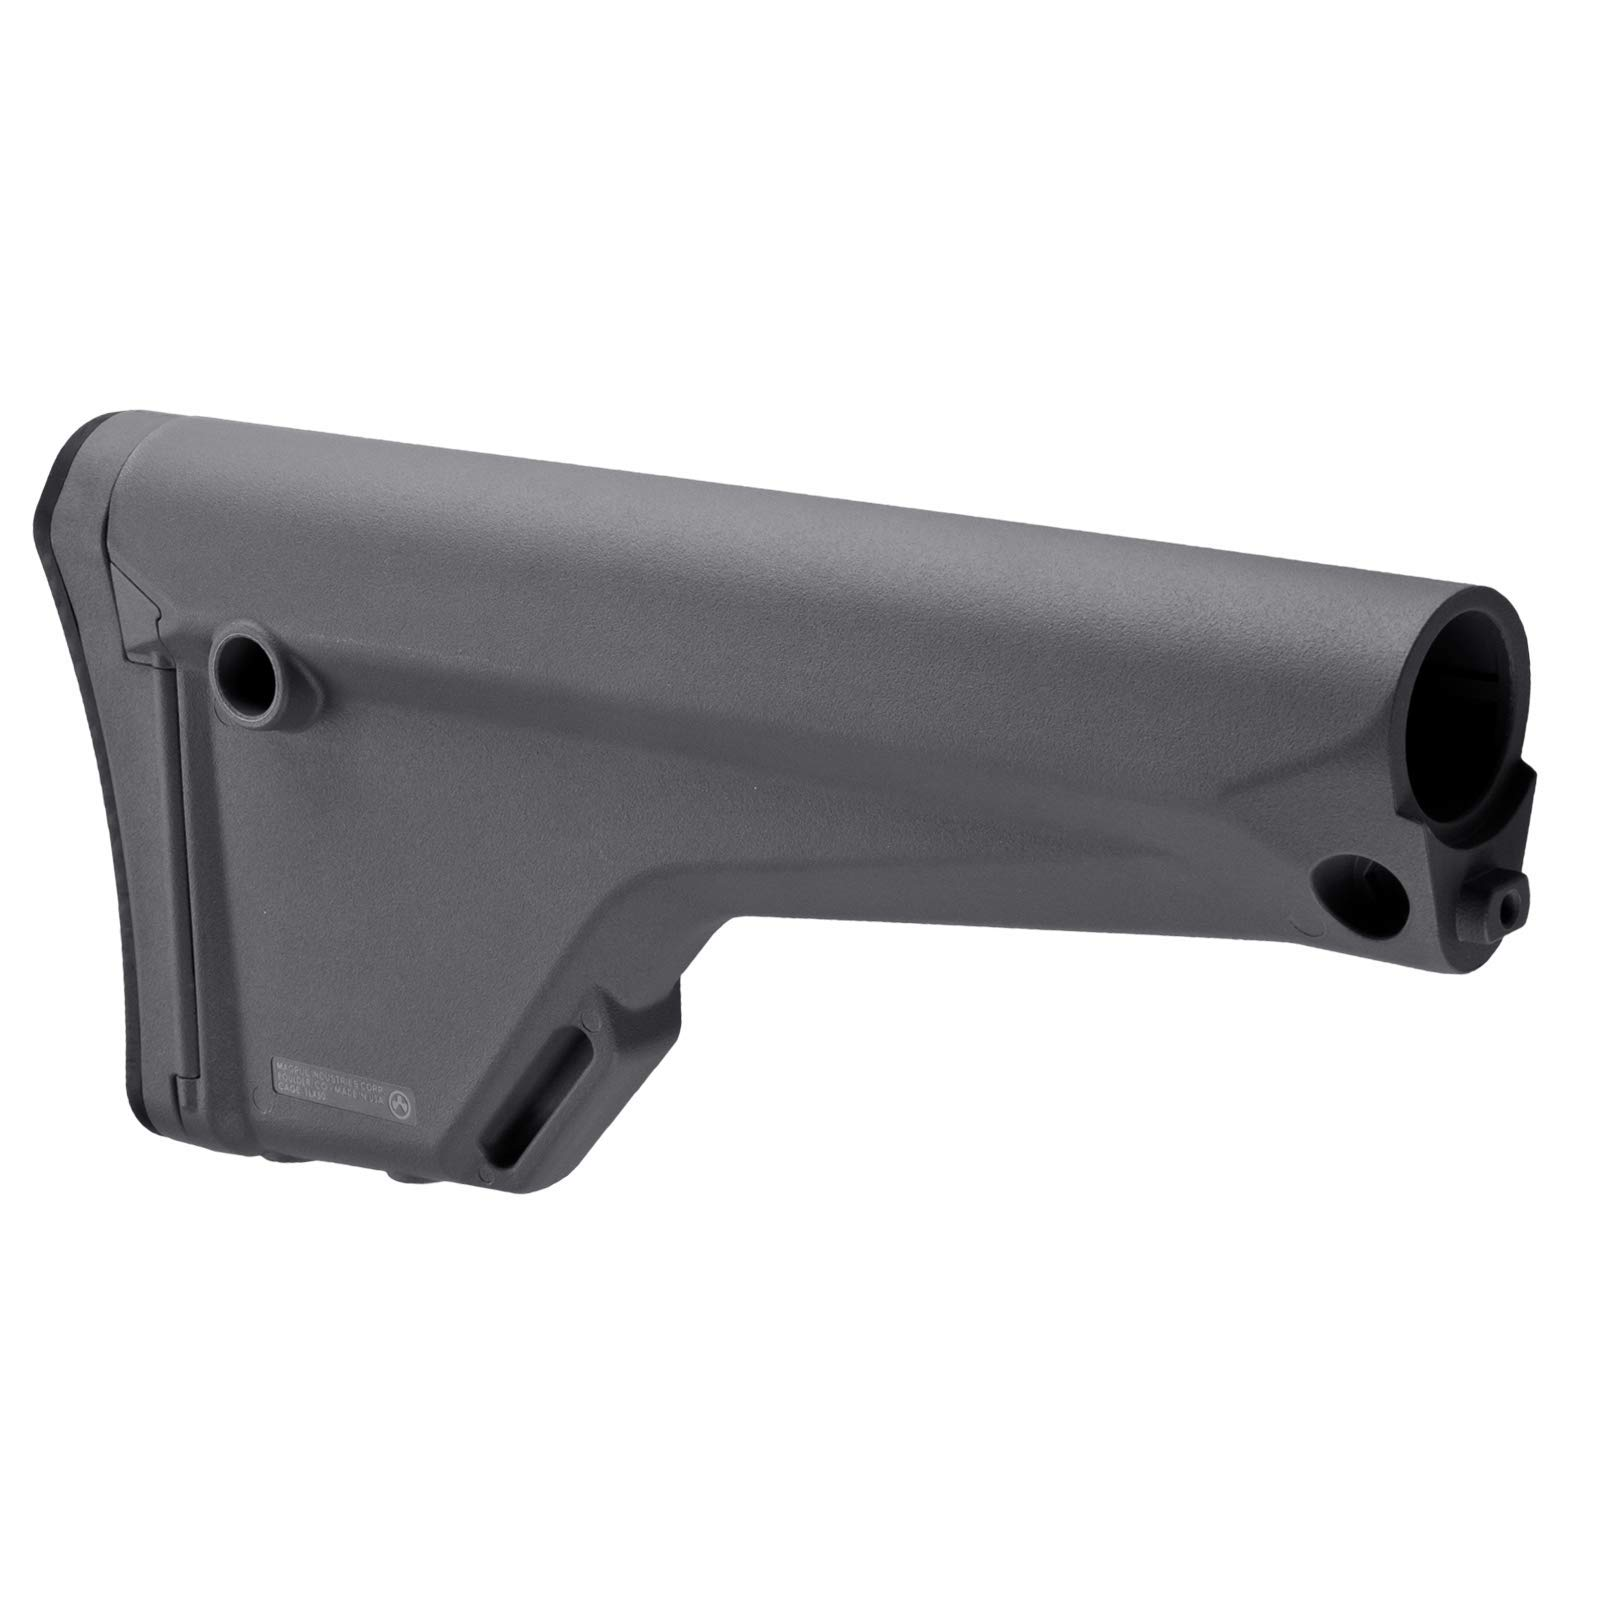 Magpul MOE Fixed Rifle Stock, Gray by Magpul